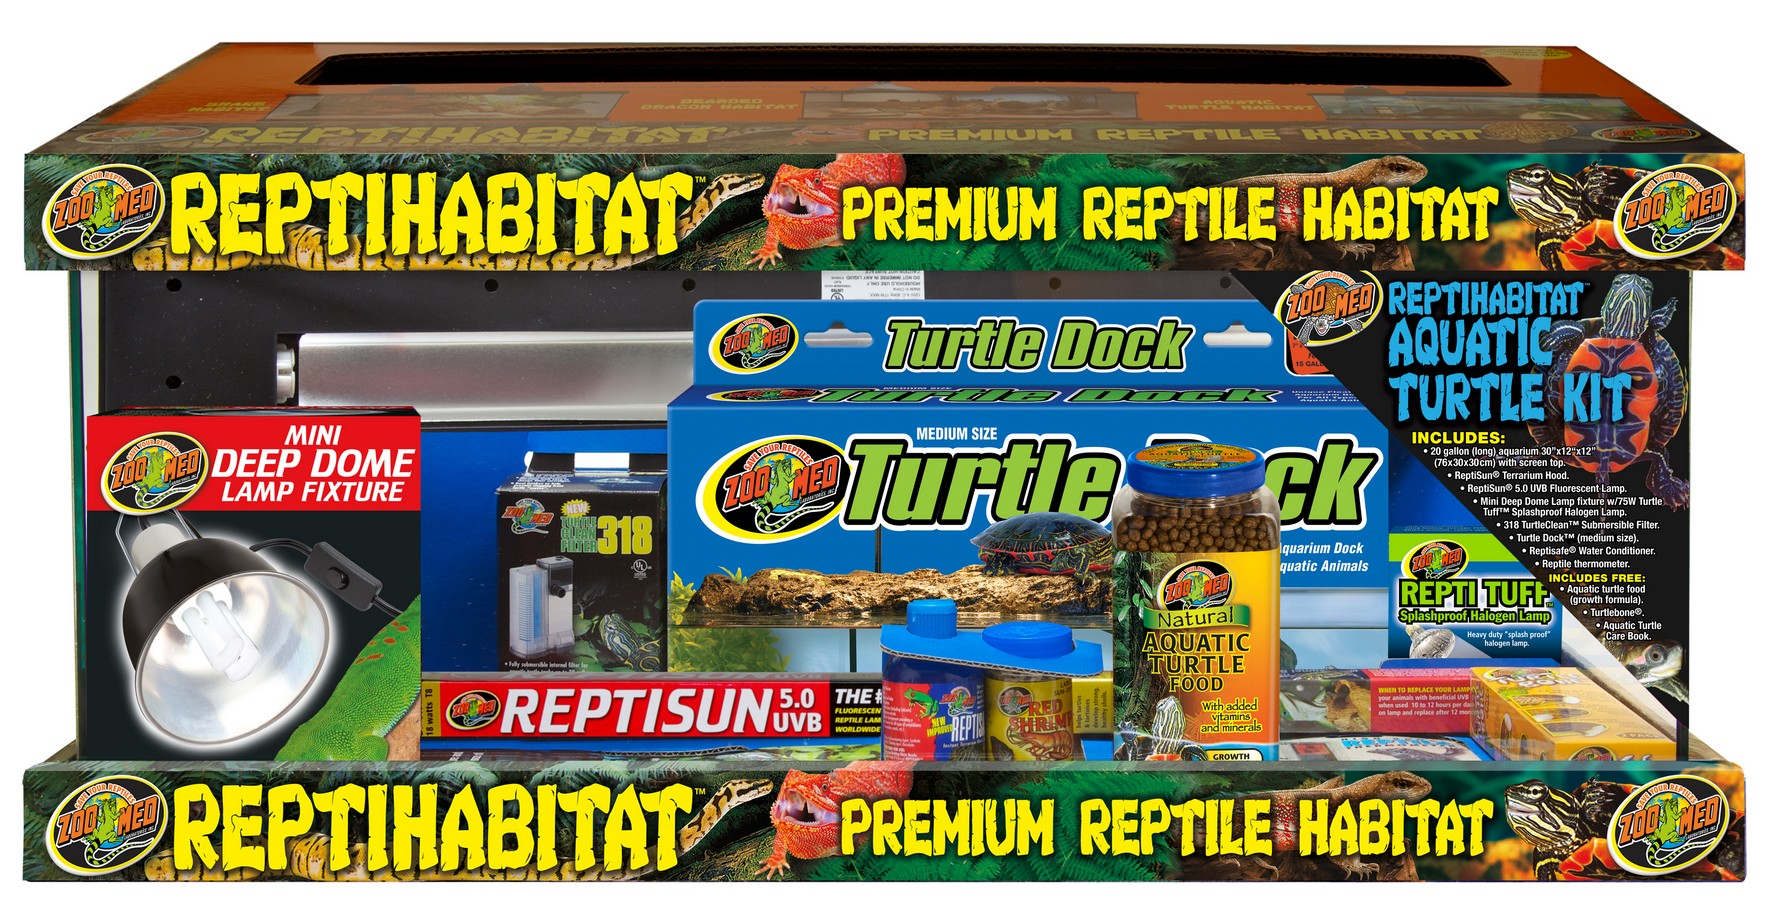 20 Gallon Reptihabitat Aquatic Turtle Kit Zoo Med